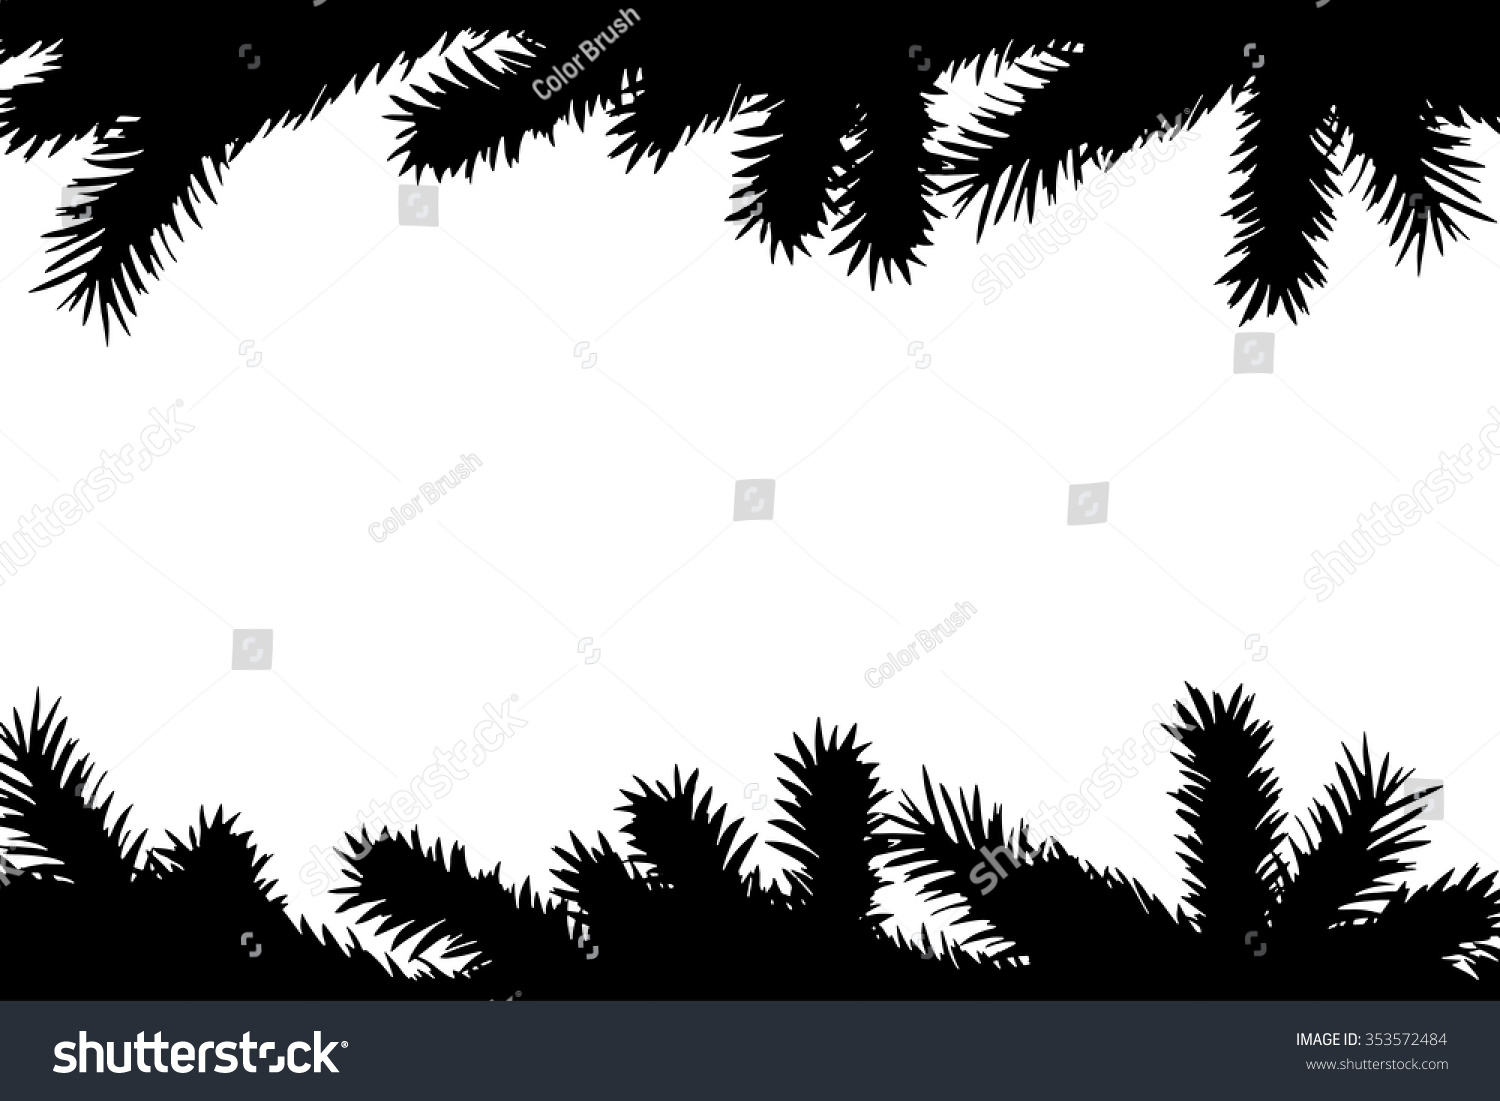 Christmas Tree Branches Borders Black Silhouette Stock